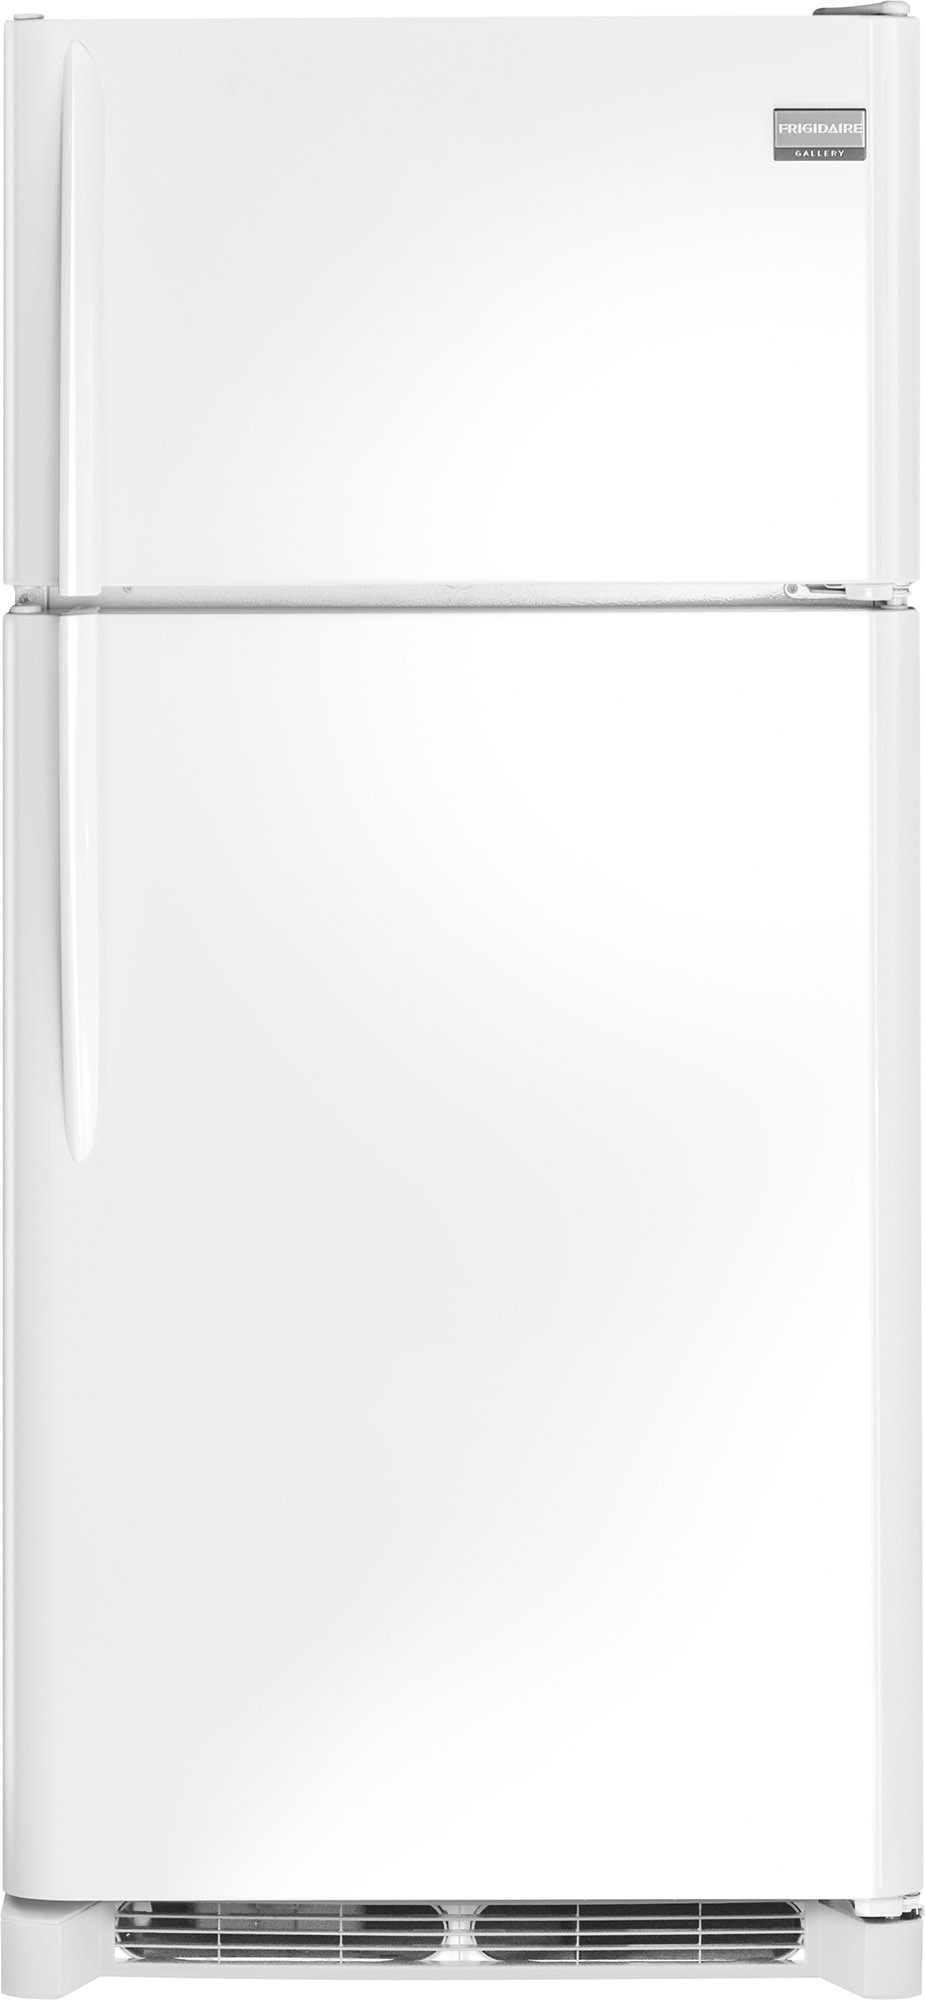 frigidaire fghb2866pp 36 inch french door with cool zone frigidaire fghb2866pp 36 inch french